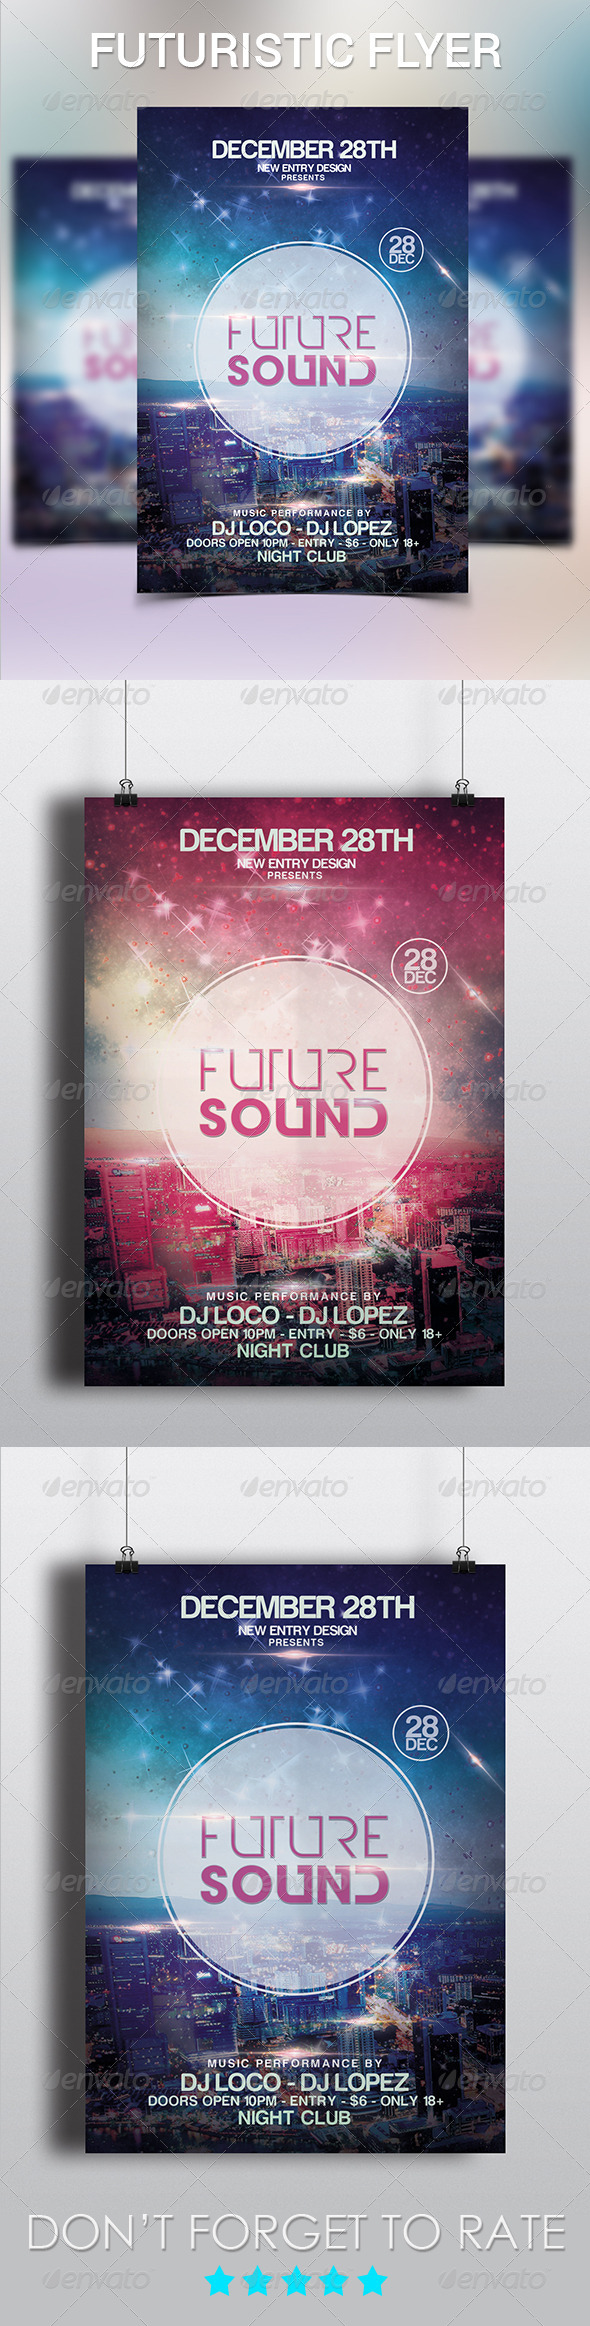 Futuristic City Flyer Template - Clubs & Parties Events